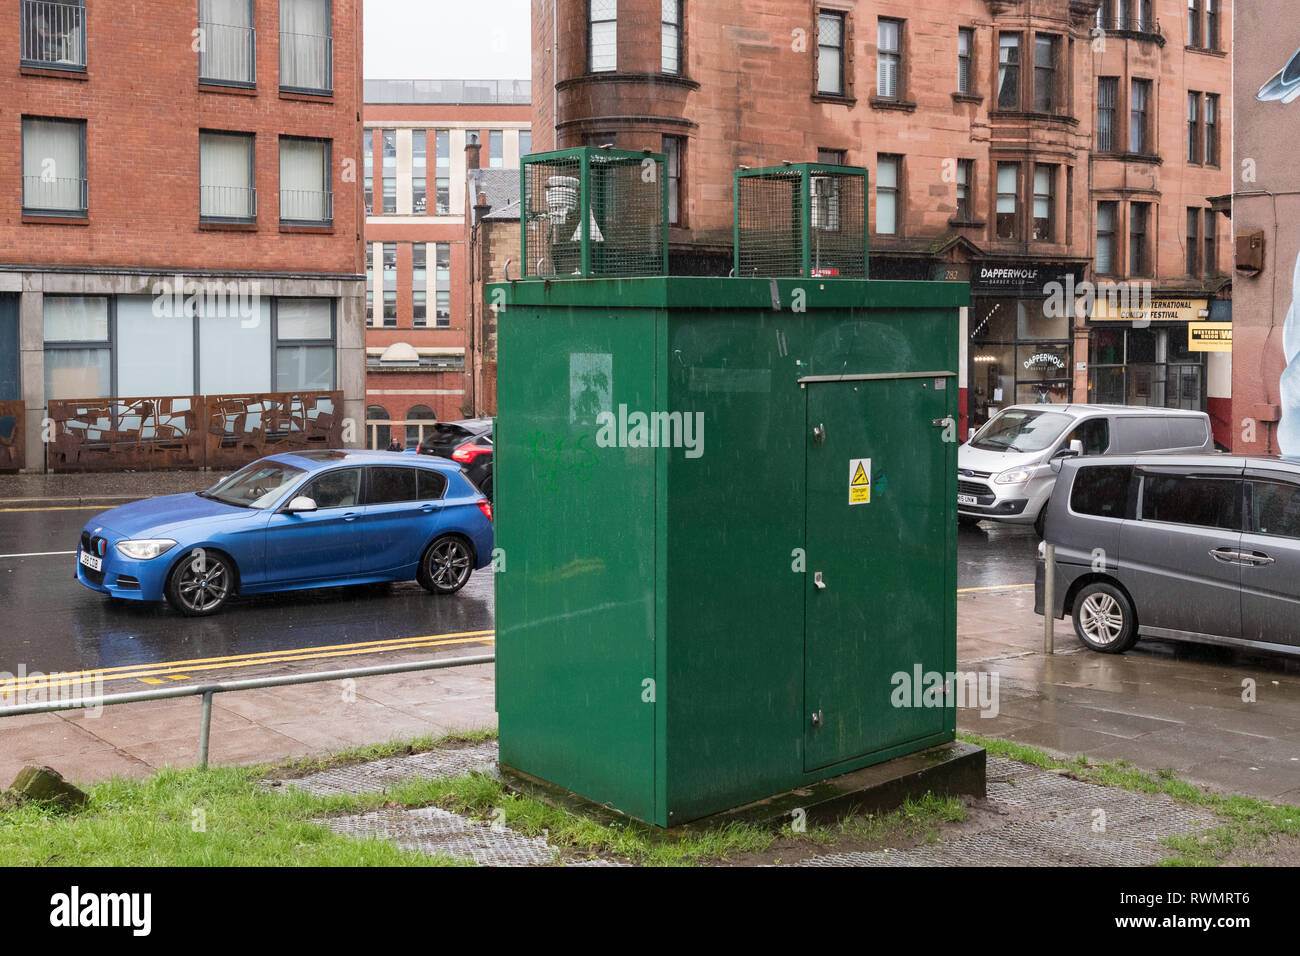 Air quality roadside monitoring box on High Street, Glasgow, Scotland, UK - Stock Image